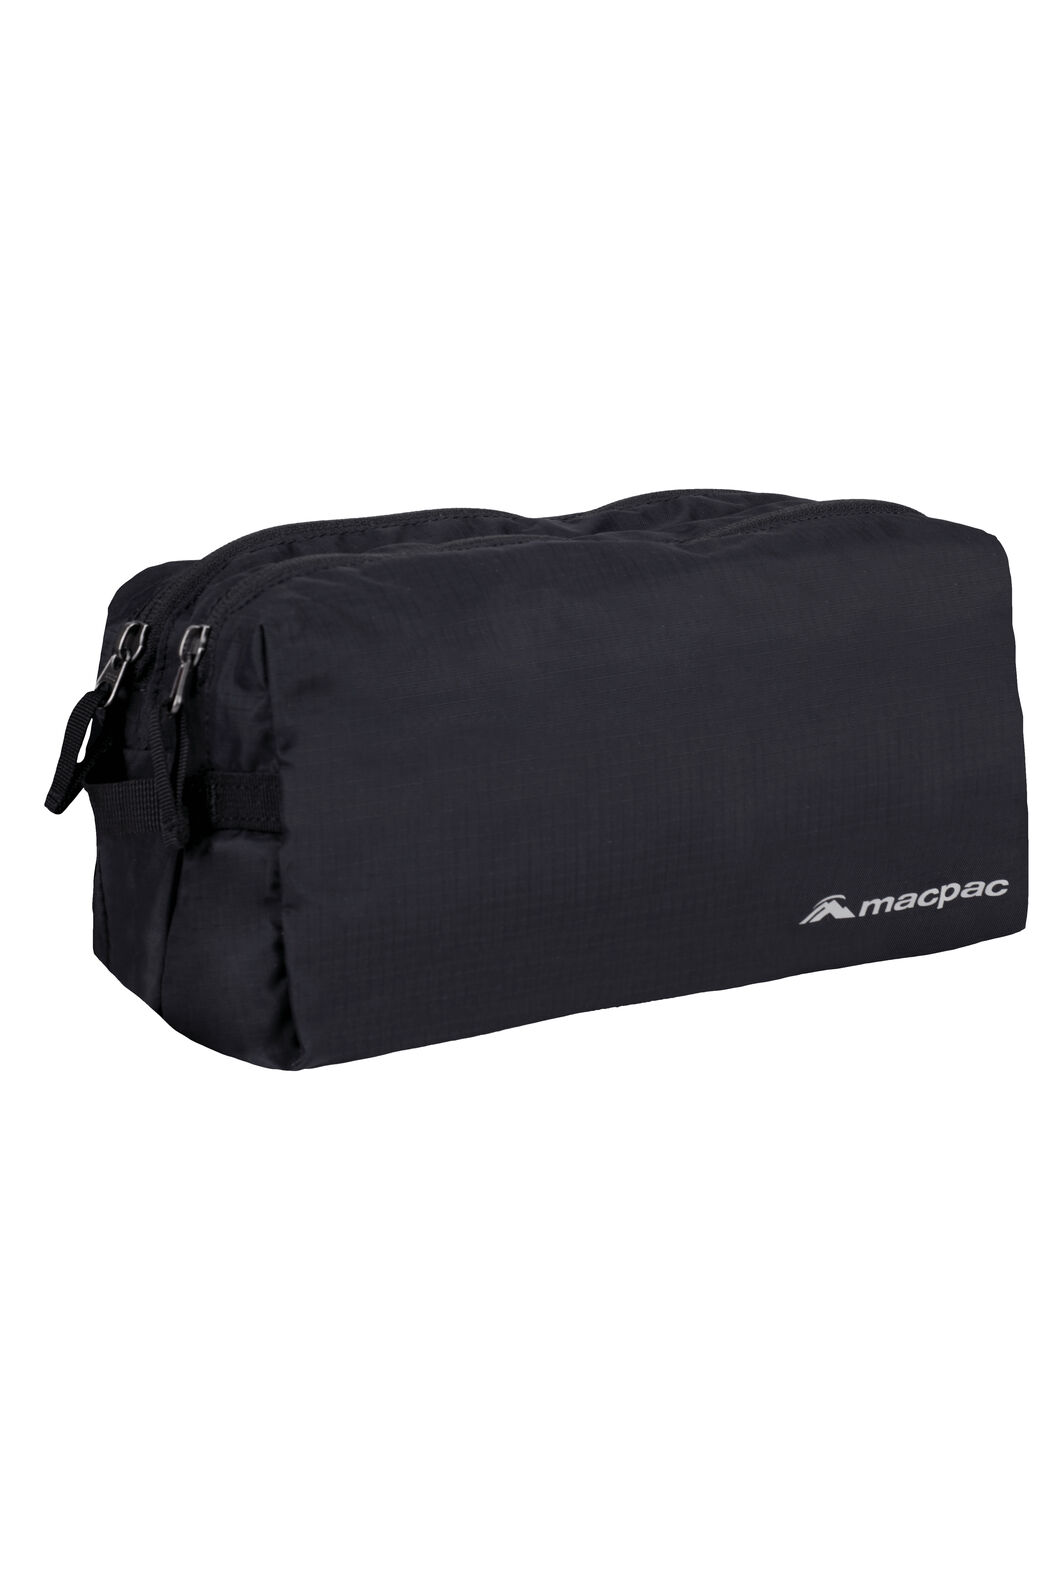 Macpac Double or Nothing Washbag, Black, hi-res